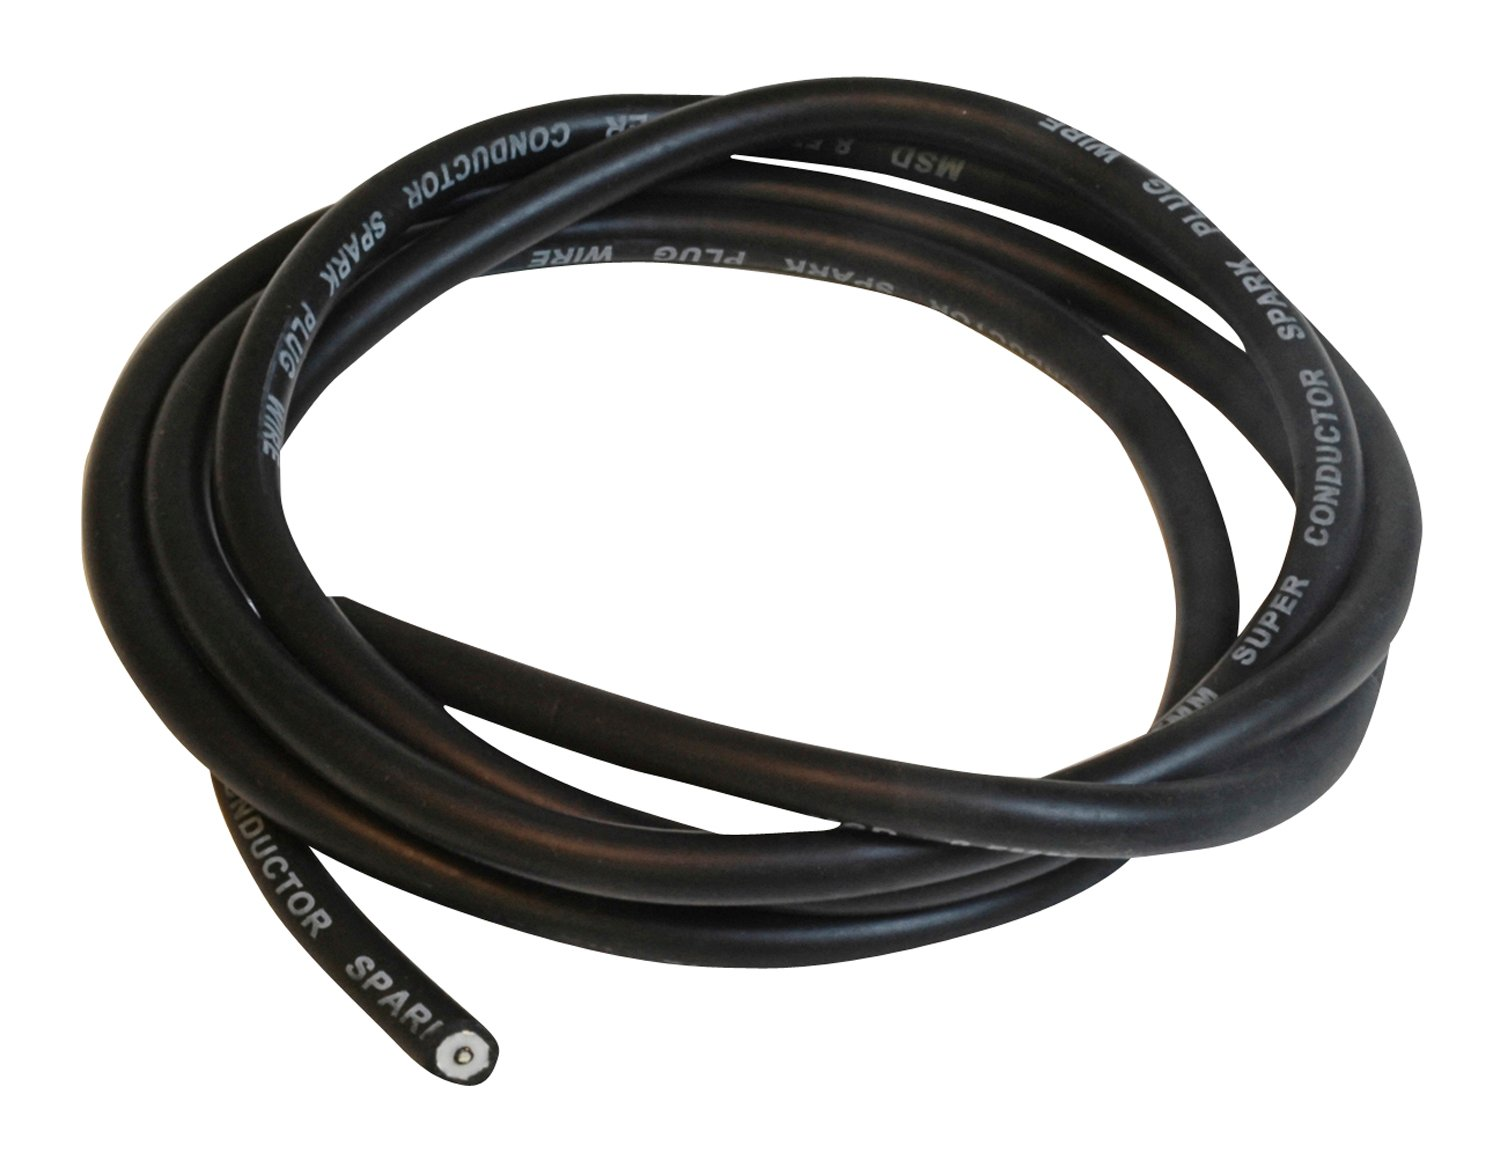 34033 - Super Conductor Bulk Wire, Black 6' Bulk Image